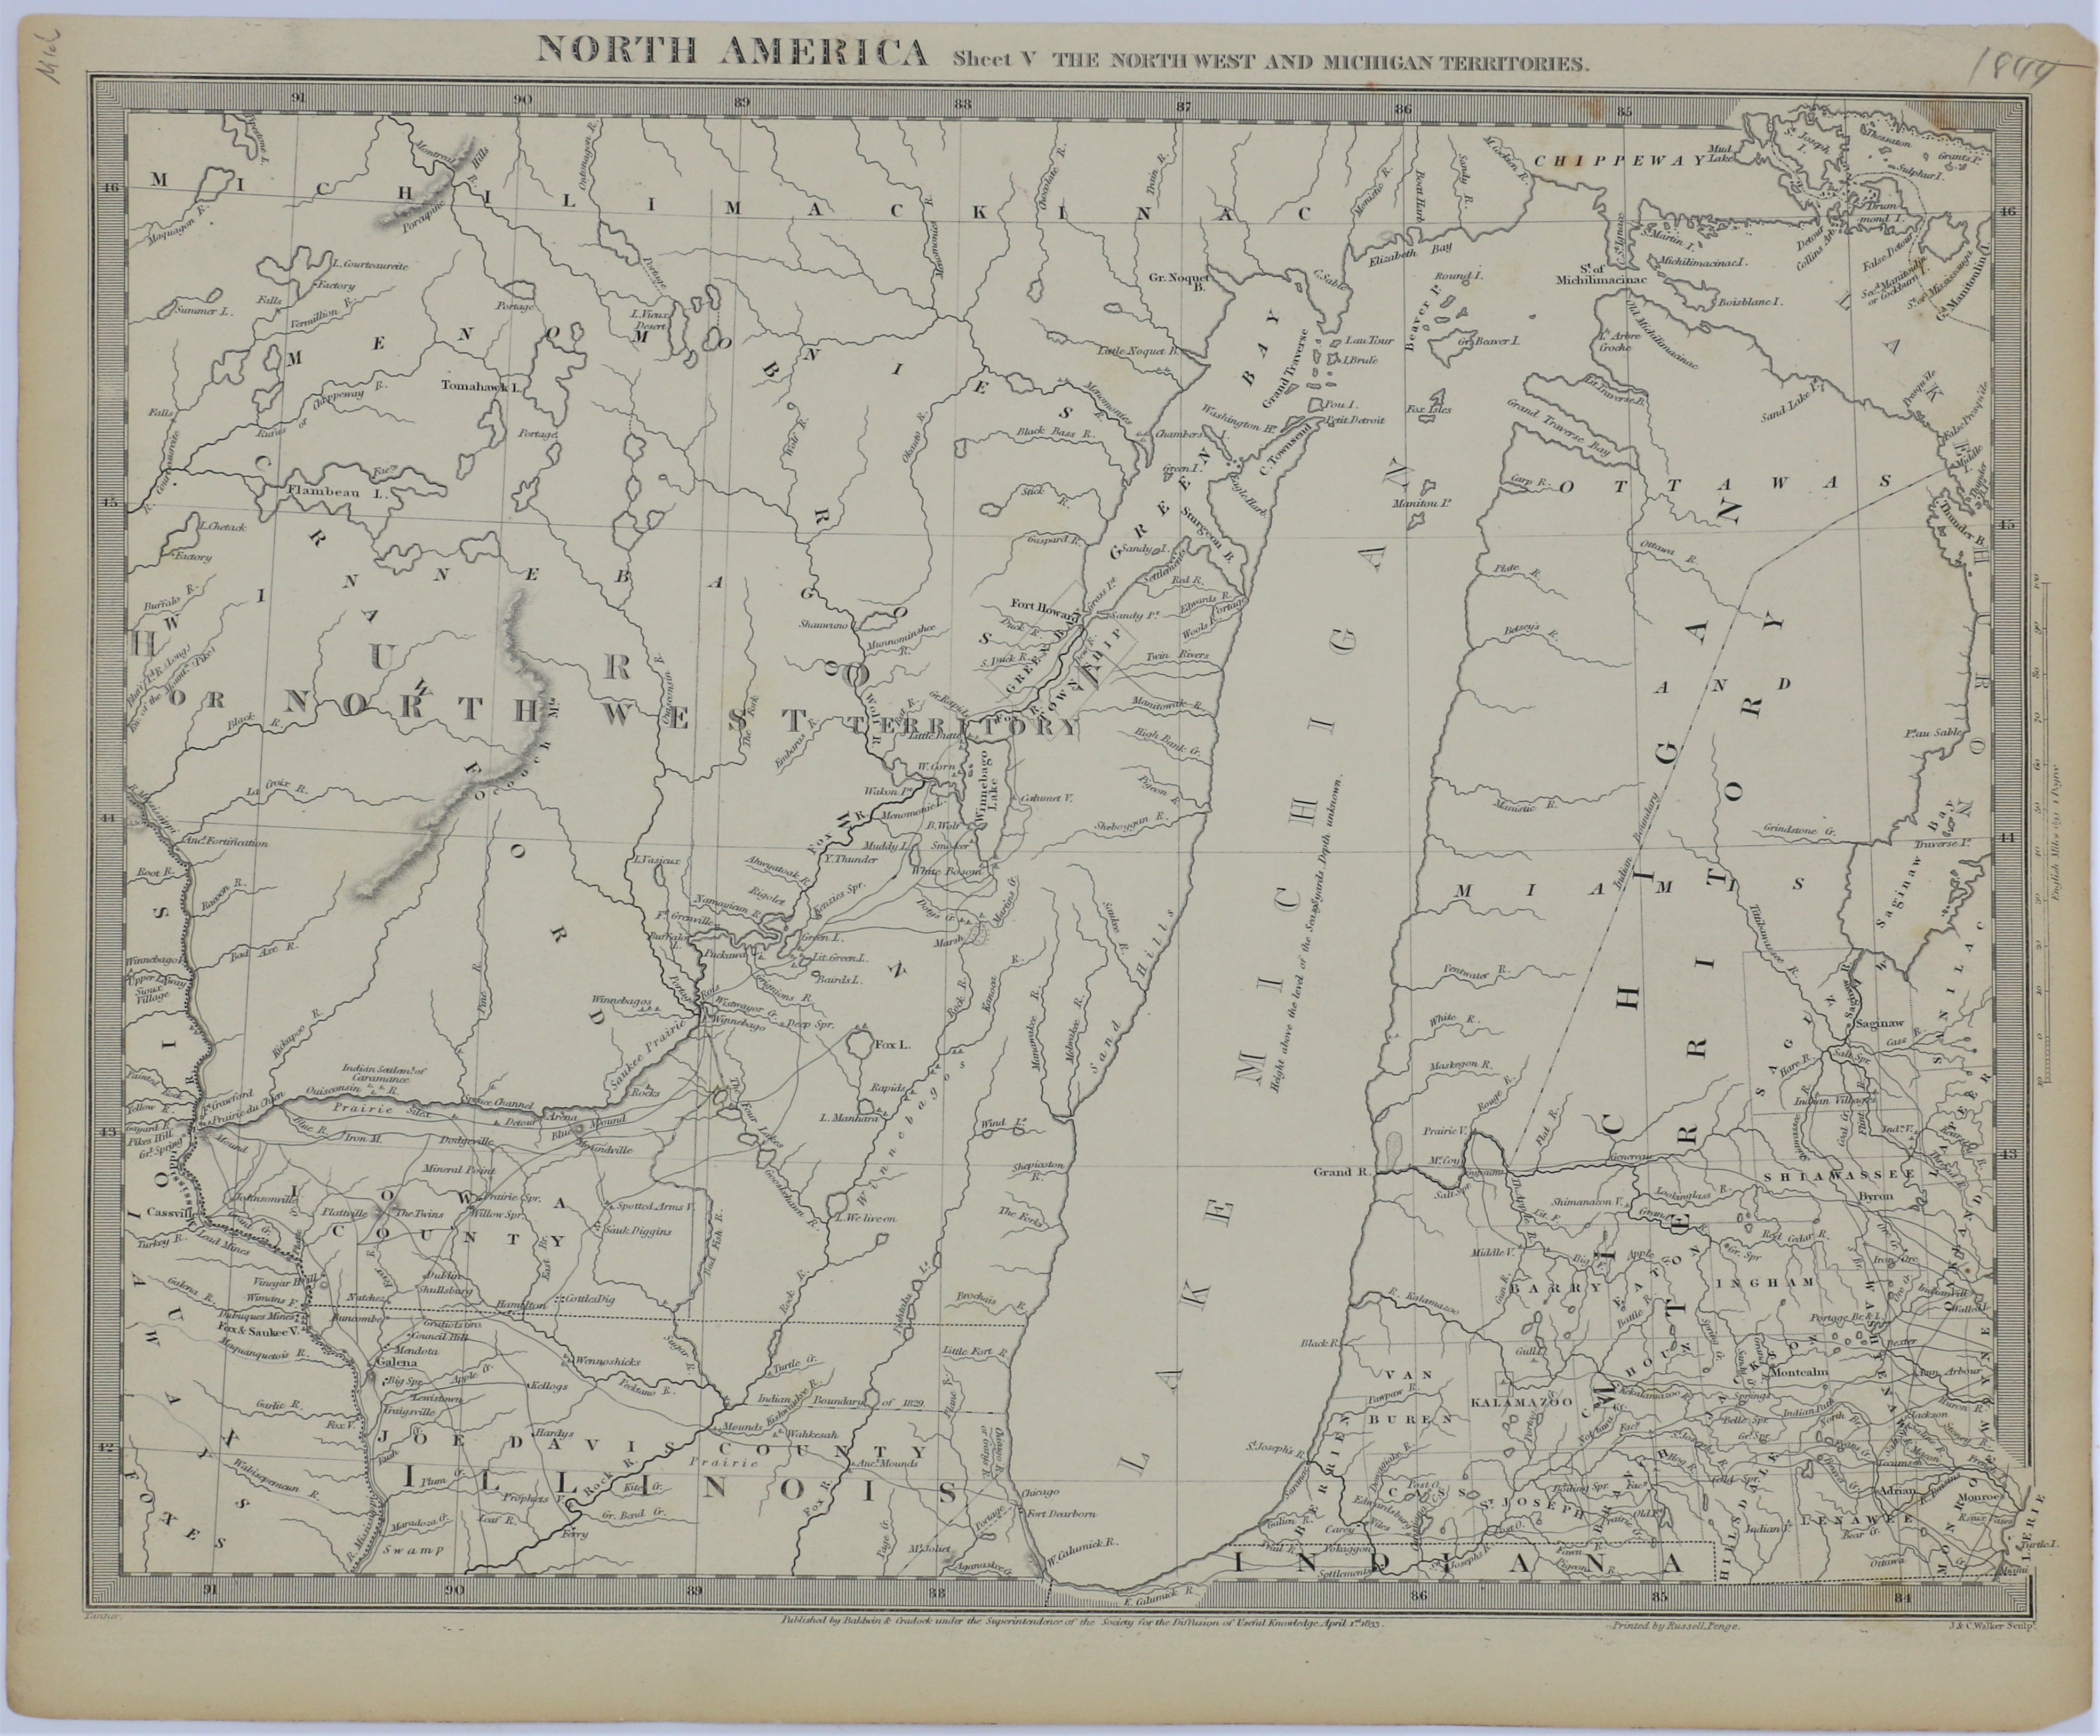 LJTP 500.005 - North America - Sheet V The North West and Michigan Territories - 1833